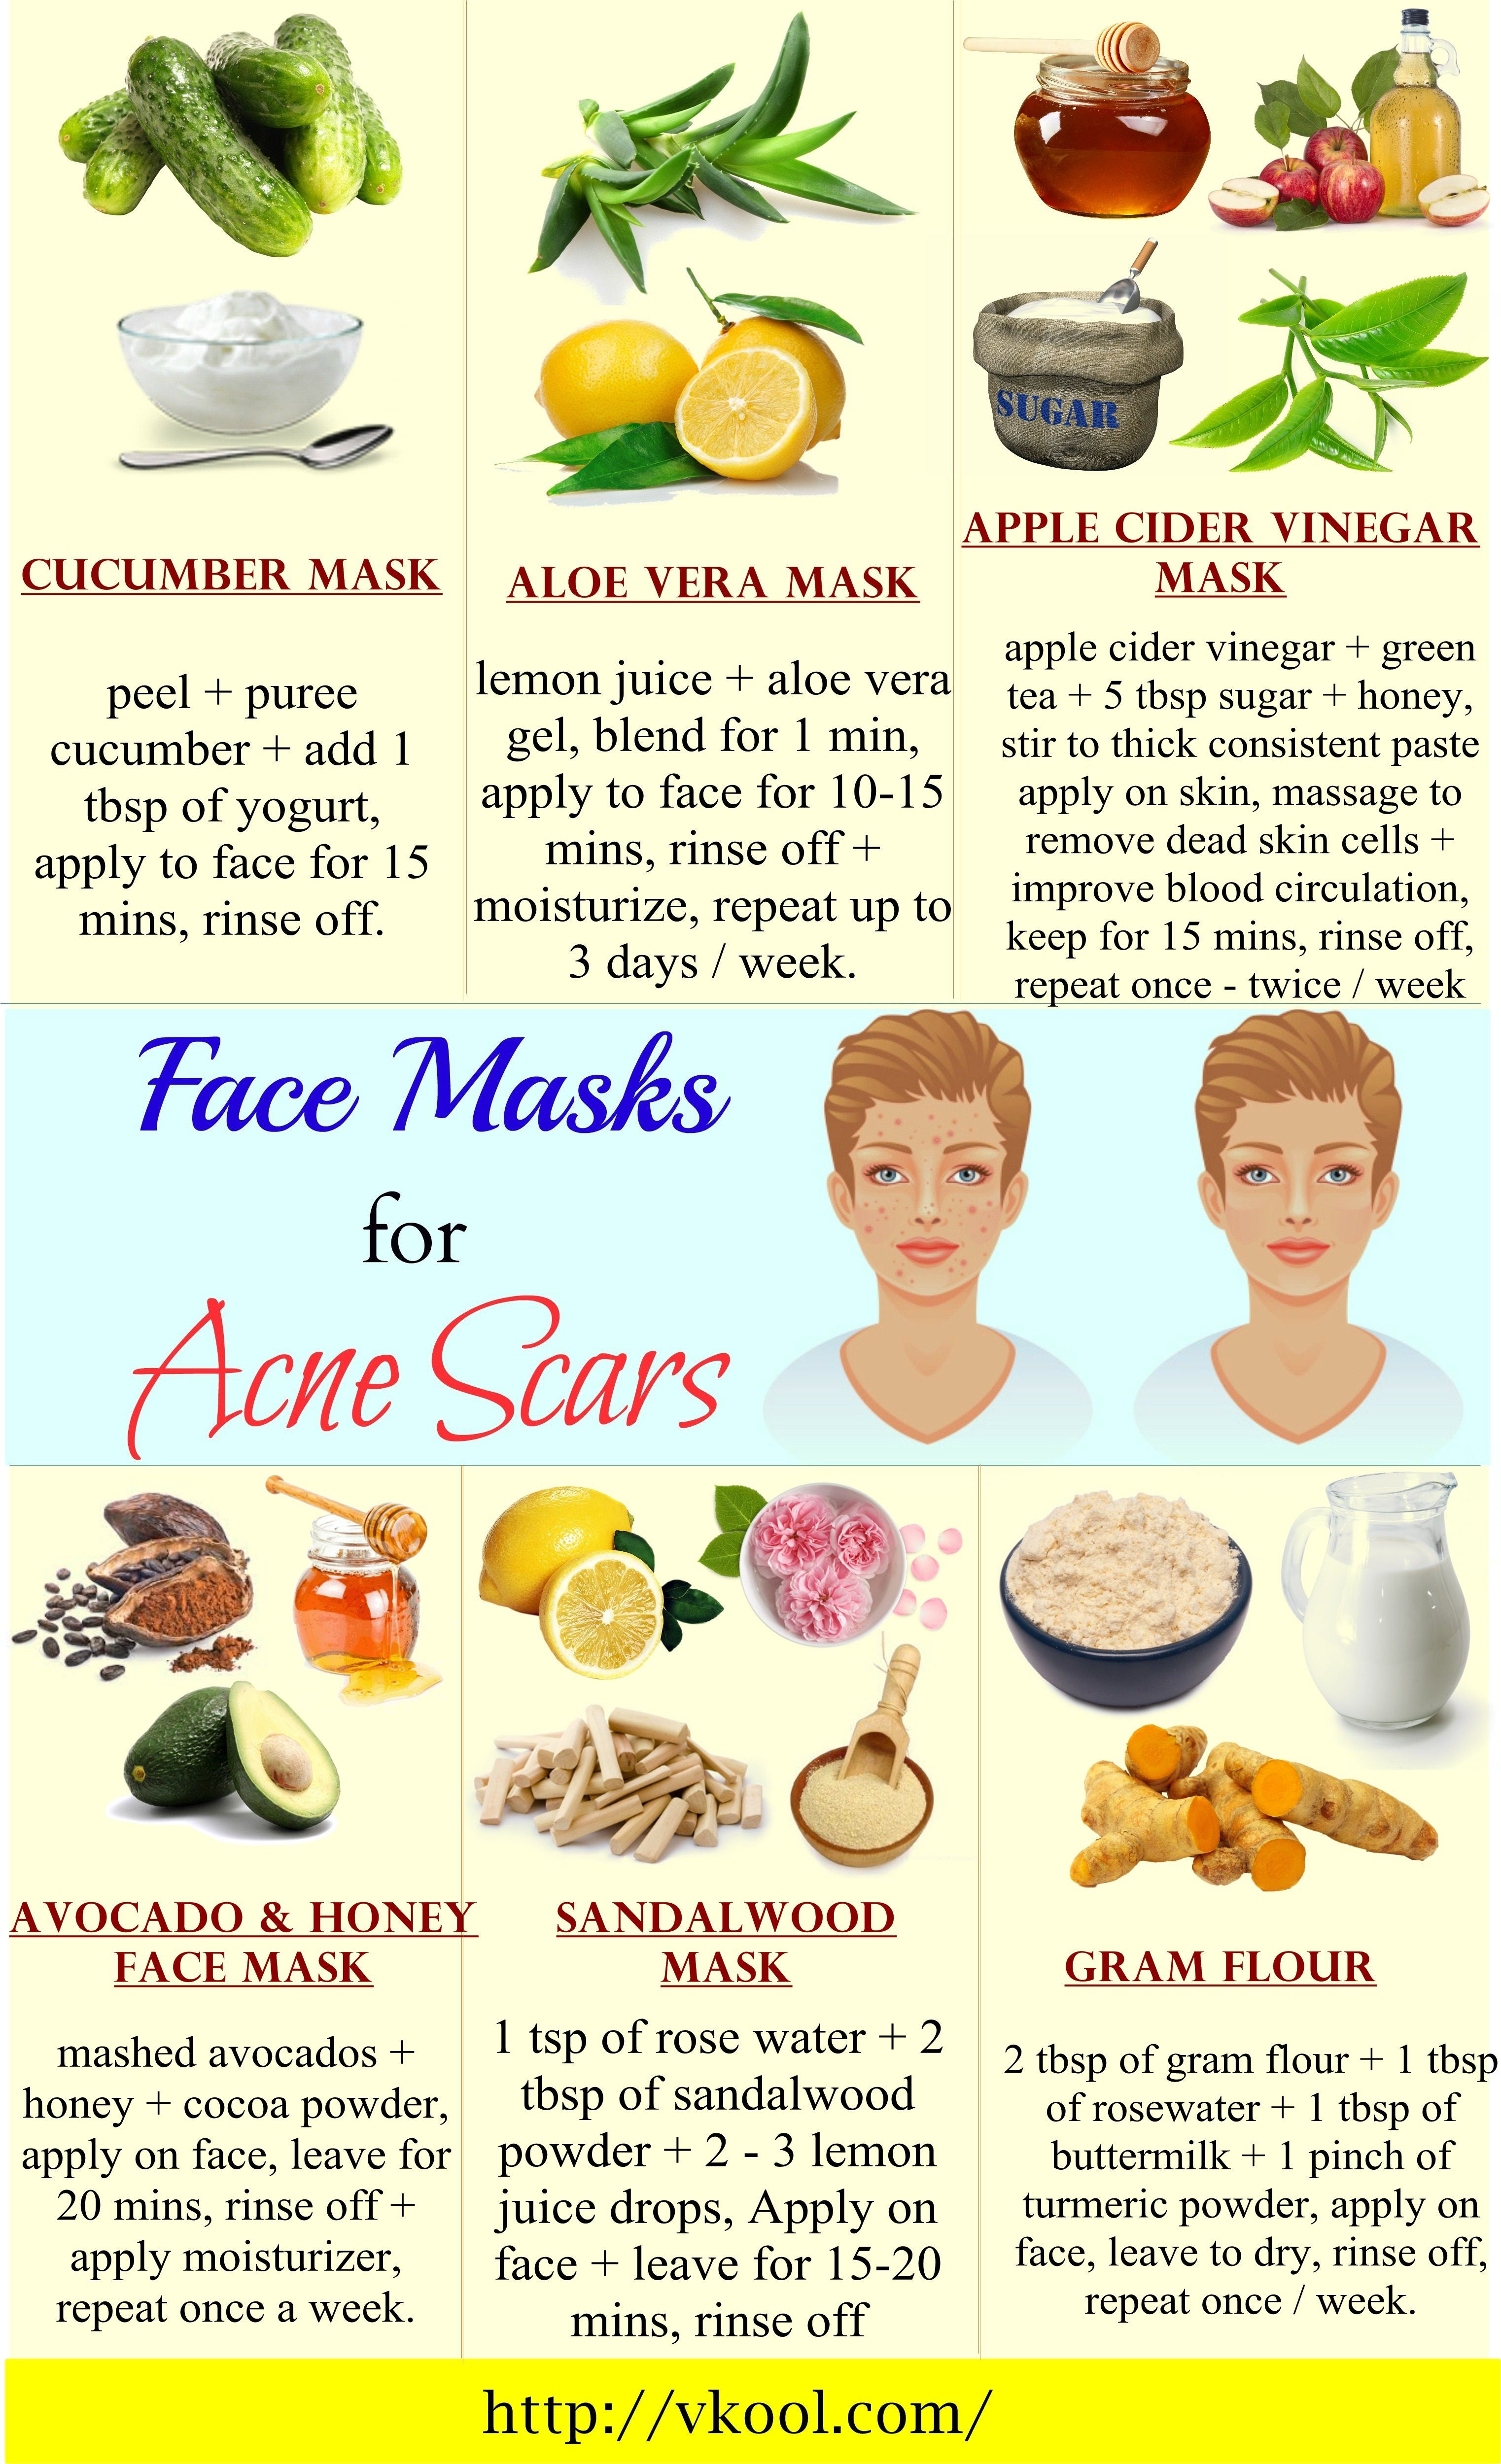 Best ideas about DIY Face Mask For Acne Scars . Save or Pin 16 Natural homemade face masks for acne scars Now.